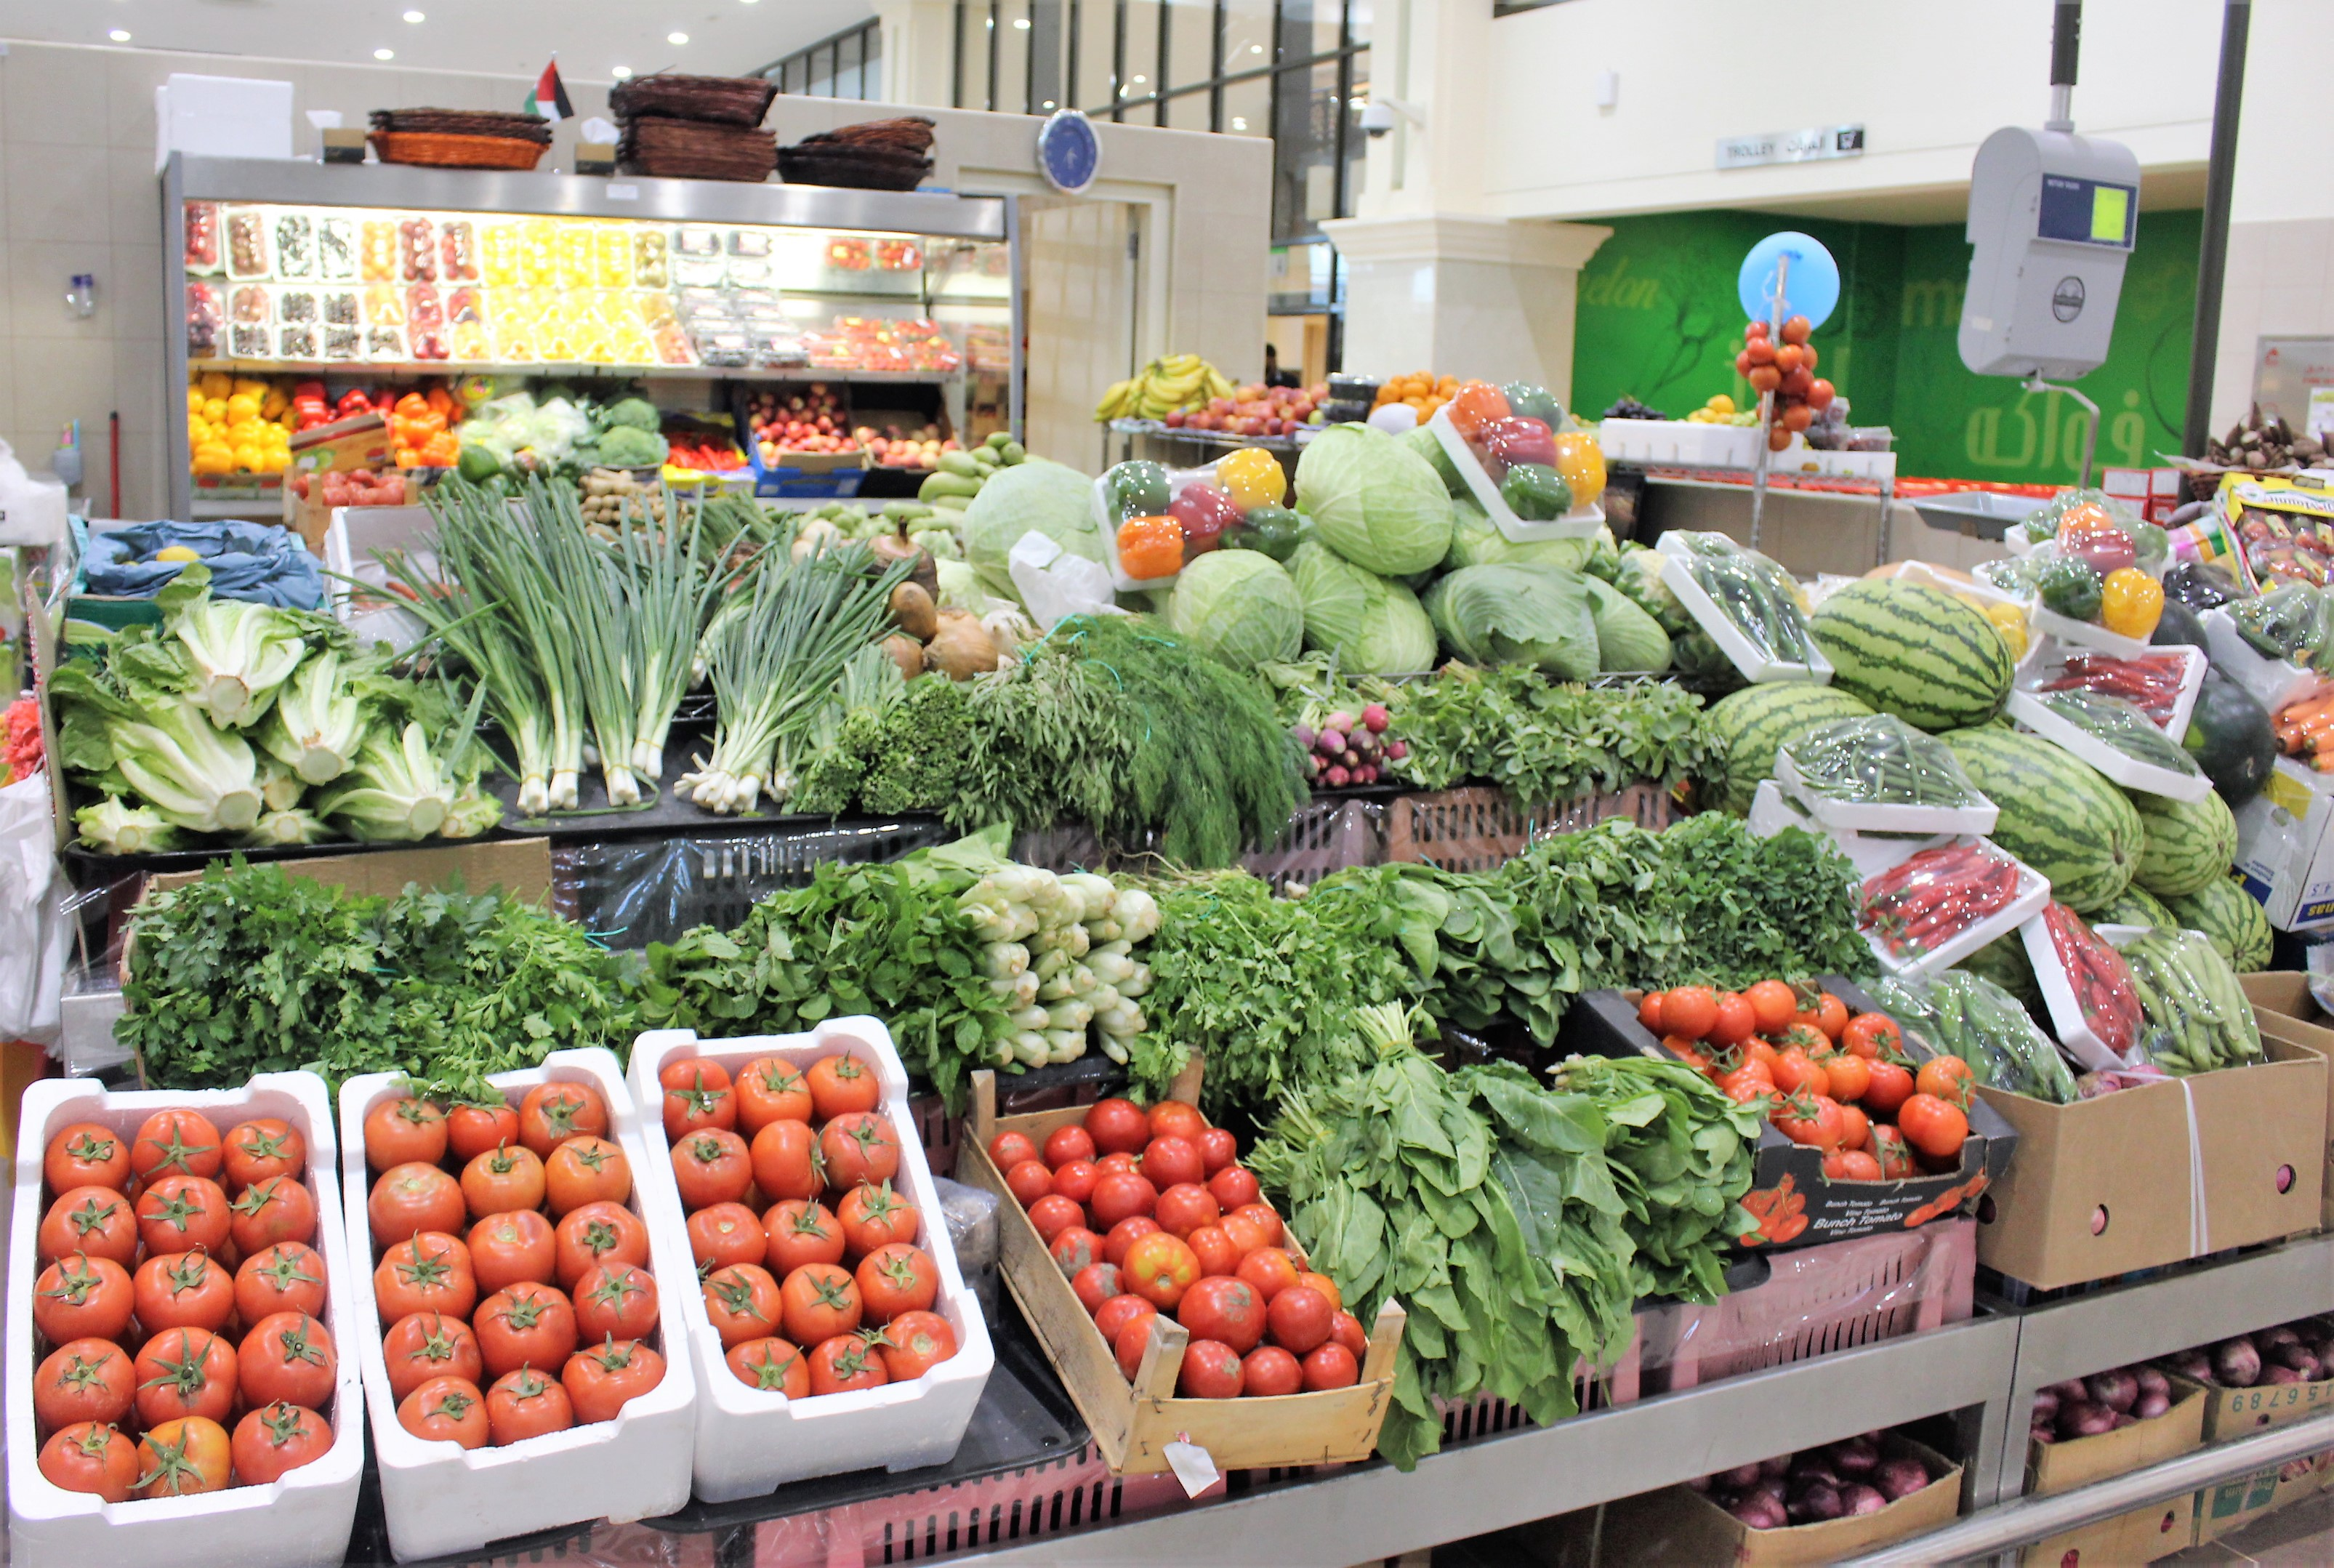 Fresh fruits sourced from fertile regions of the country